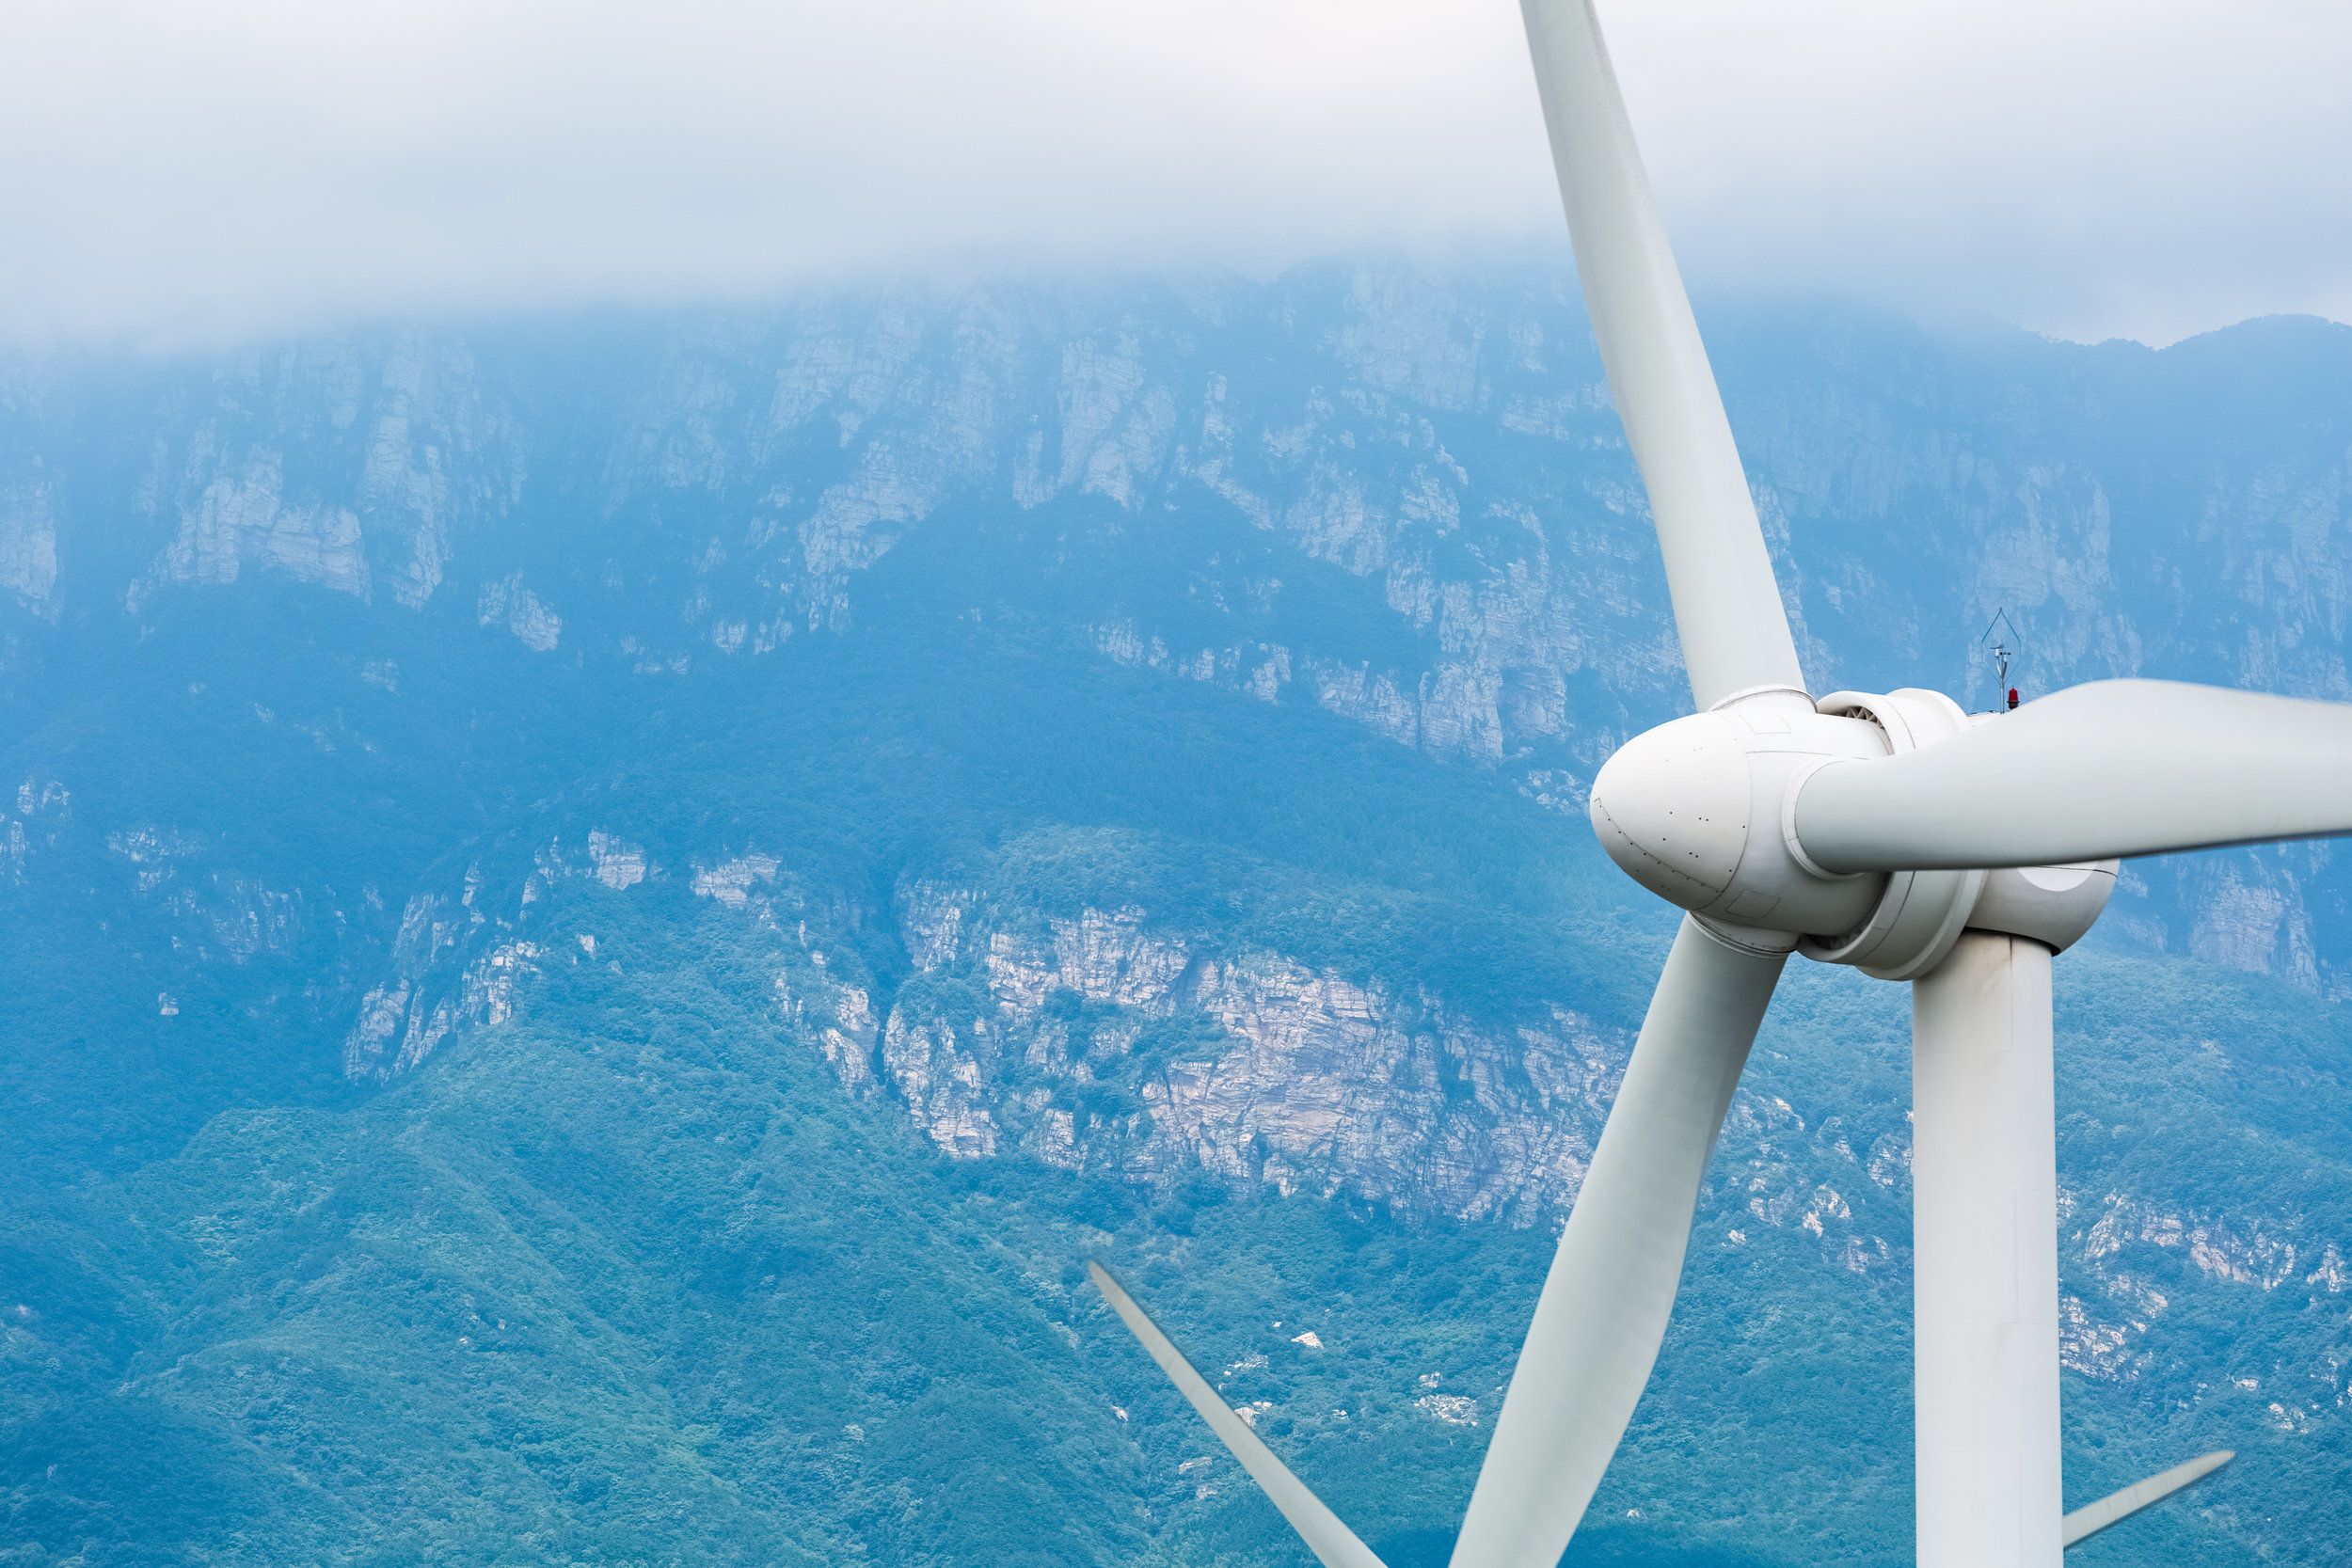 renewable-energy-closeup-PU523L7.jpg